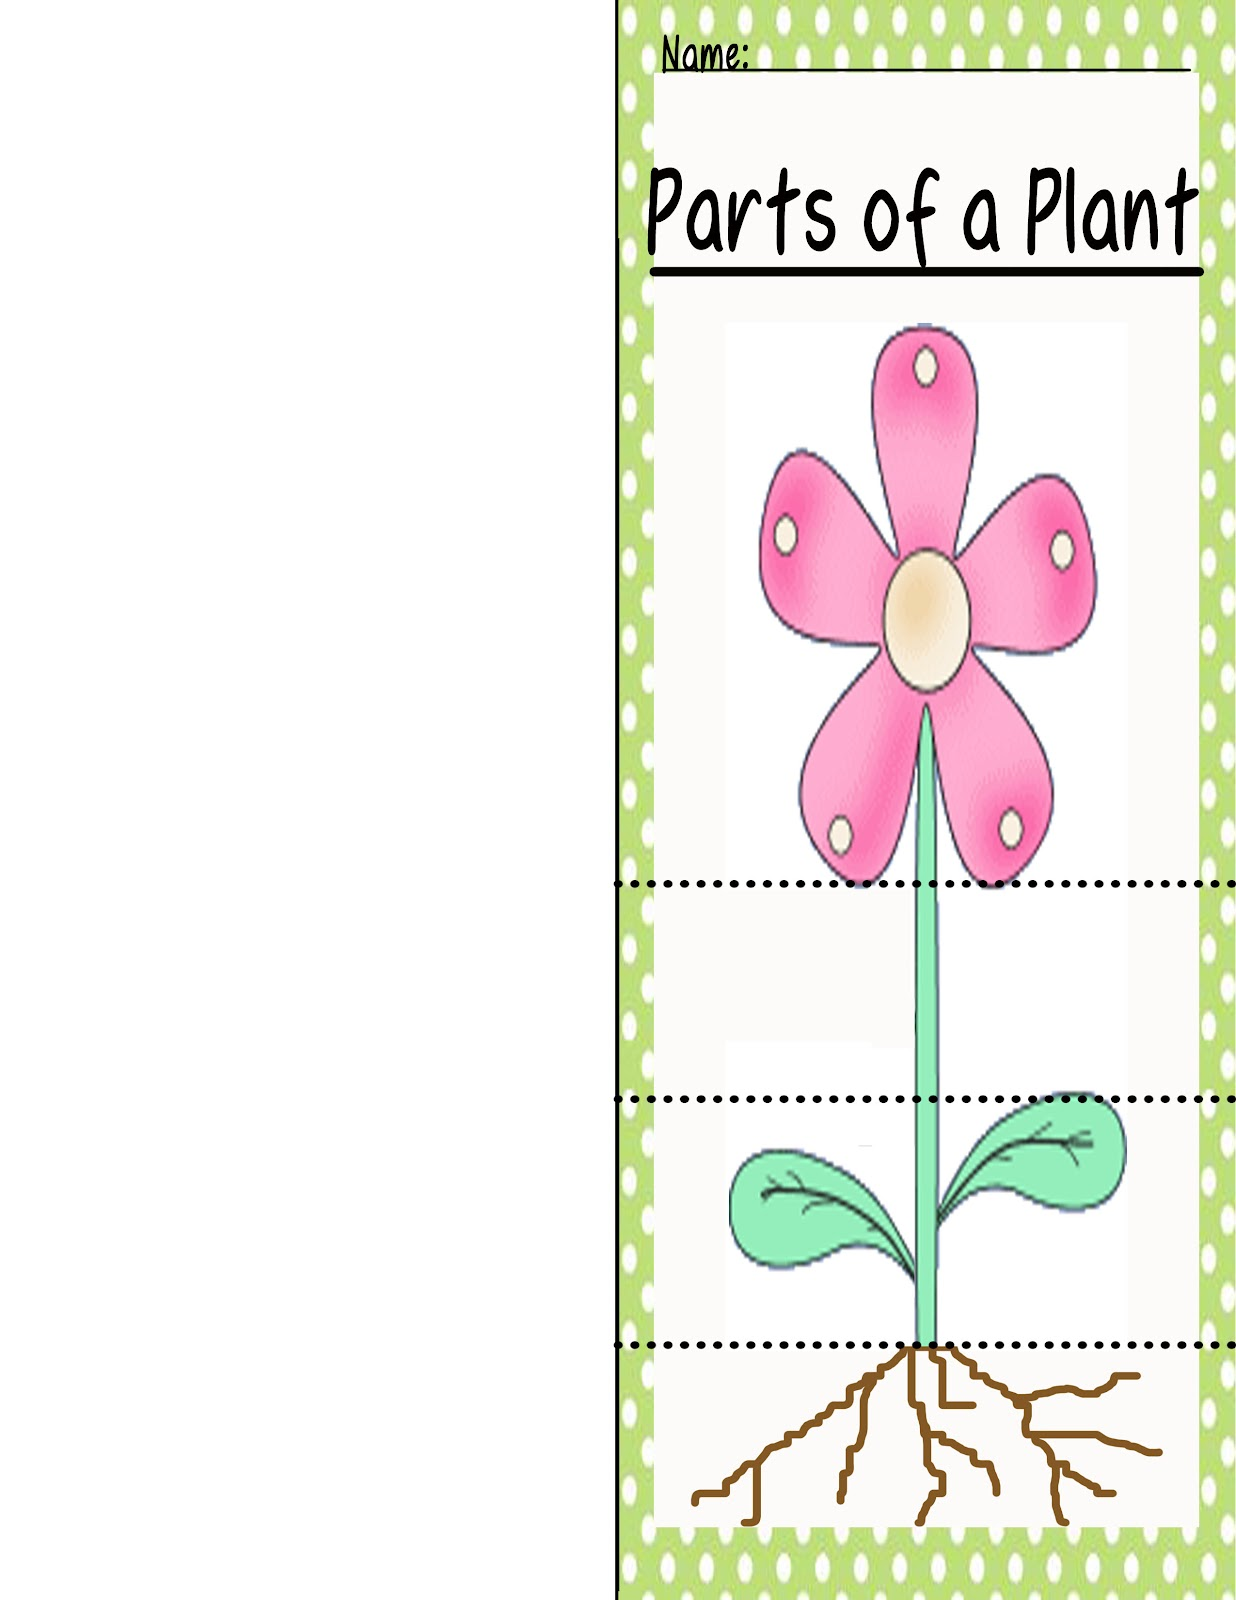 50 Follower Giveaway Amp Structures Of A Plant